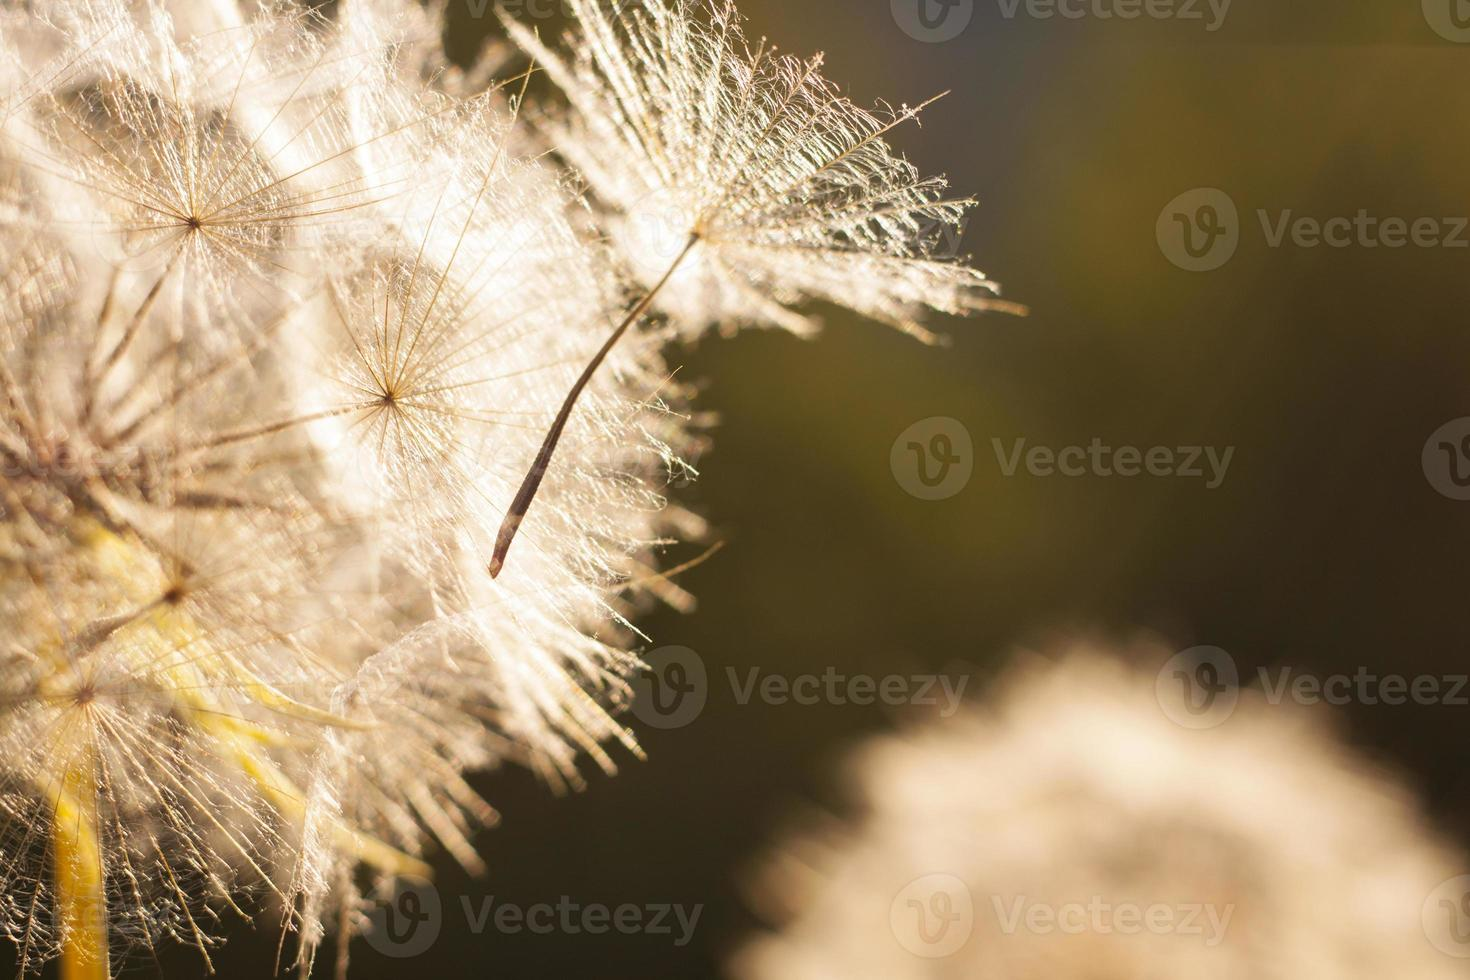 Flower Dandelion. Close-up photo